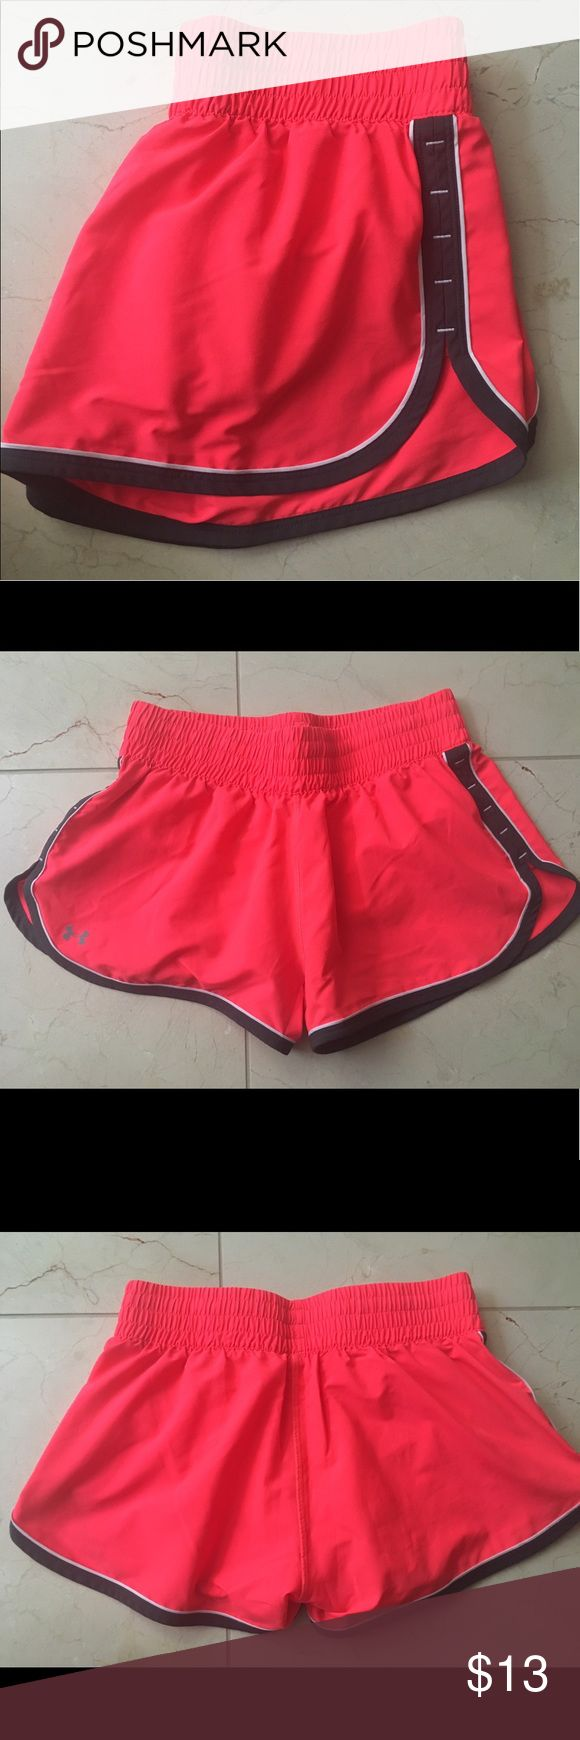 "Under Armour Neon Running Shorts Never worn! 3"" inseam. Neon pink/coral color with white lining. Small pocket on inside lining Under Armour Shorts"